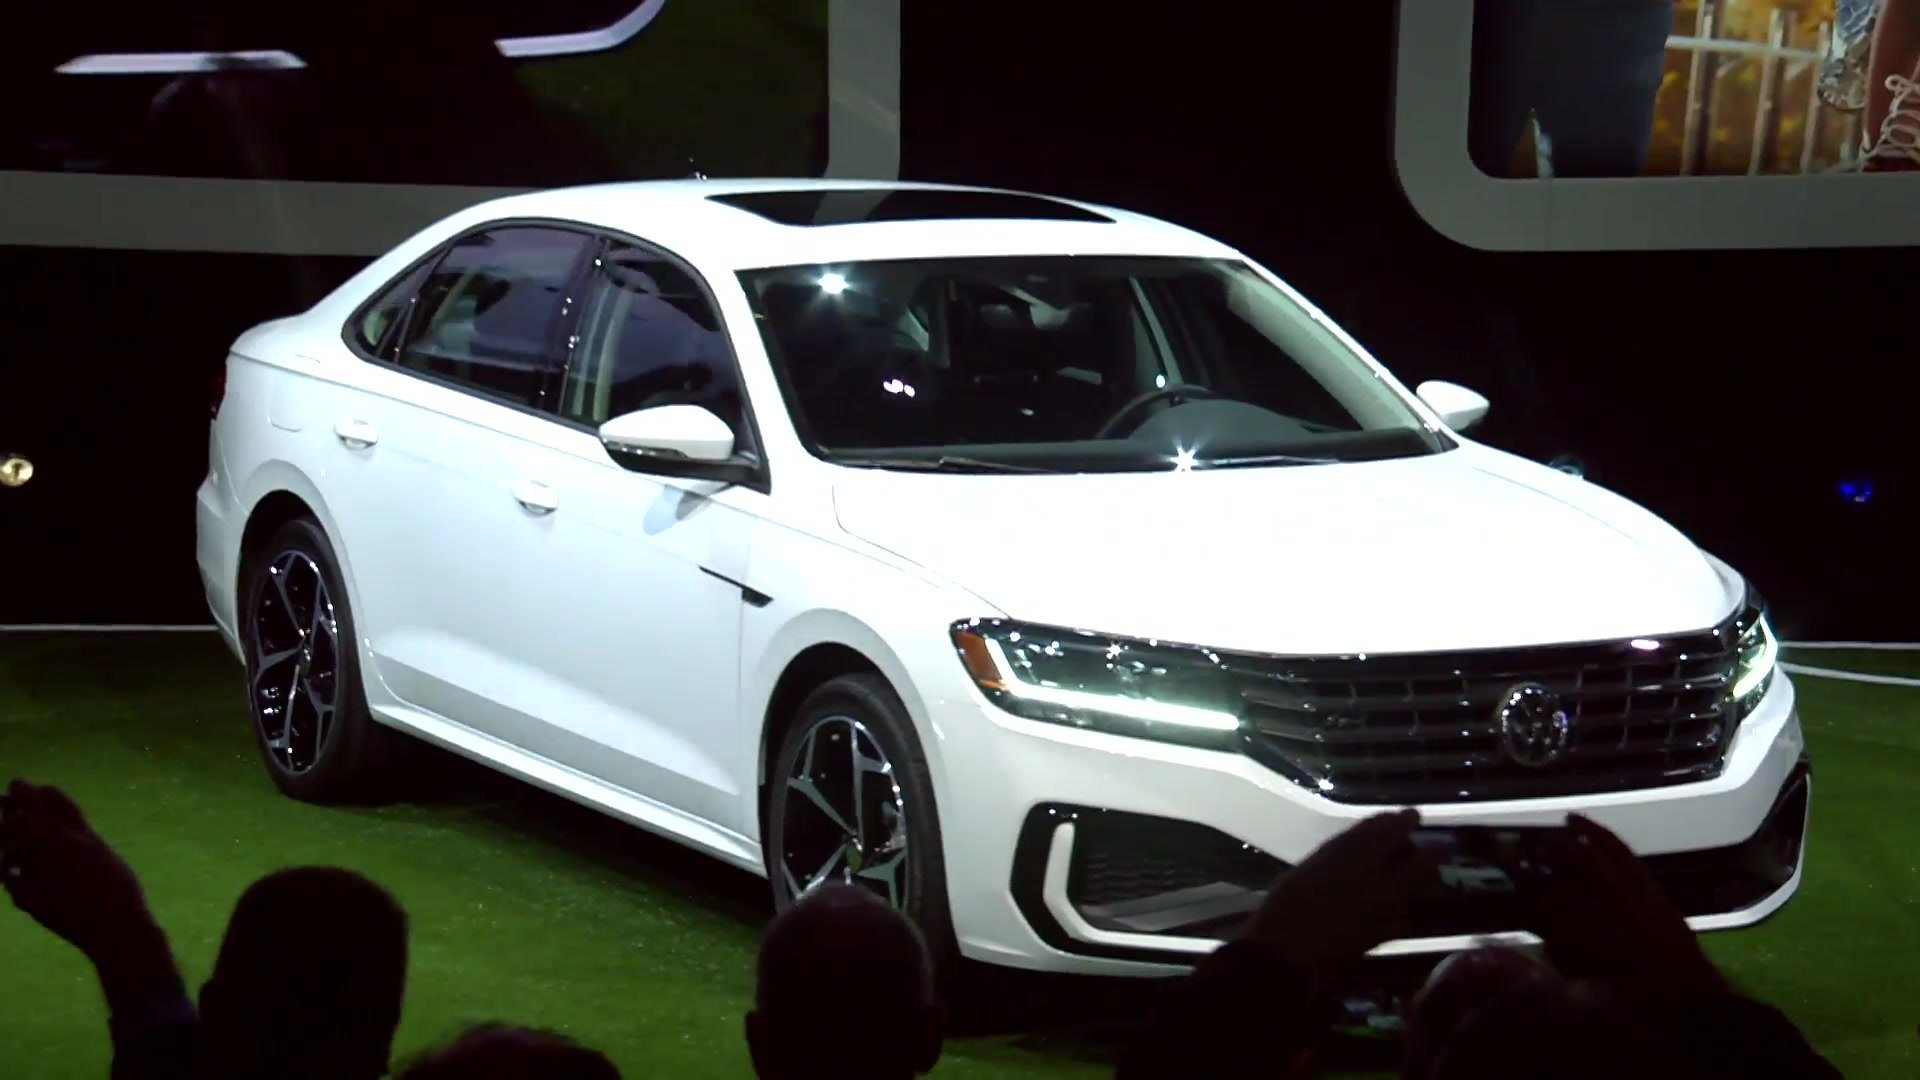 Volkswagen at the 2019 North American International Auto Show 1920x1080